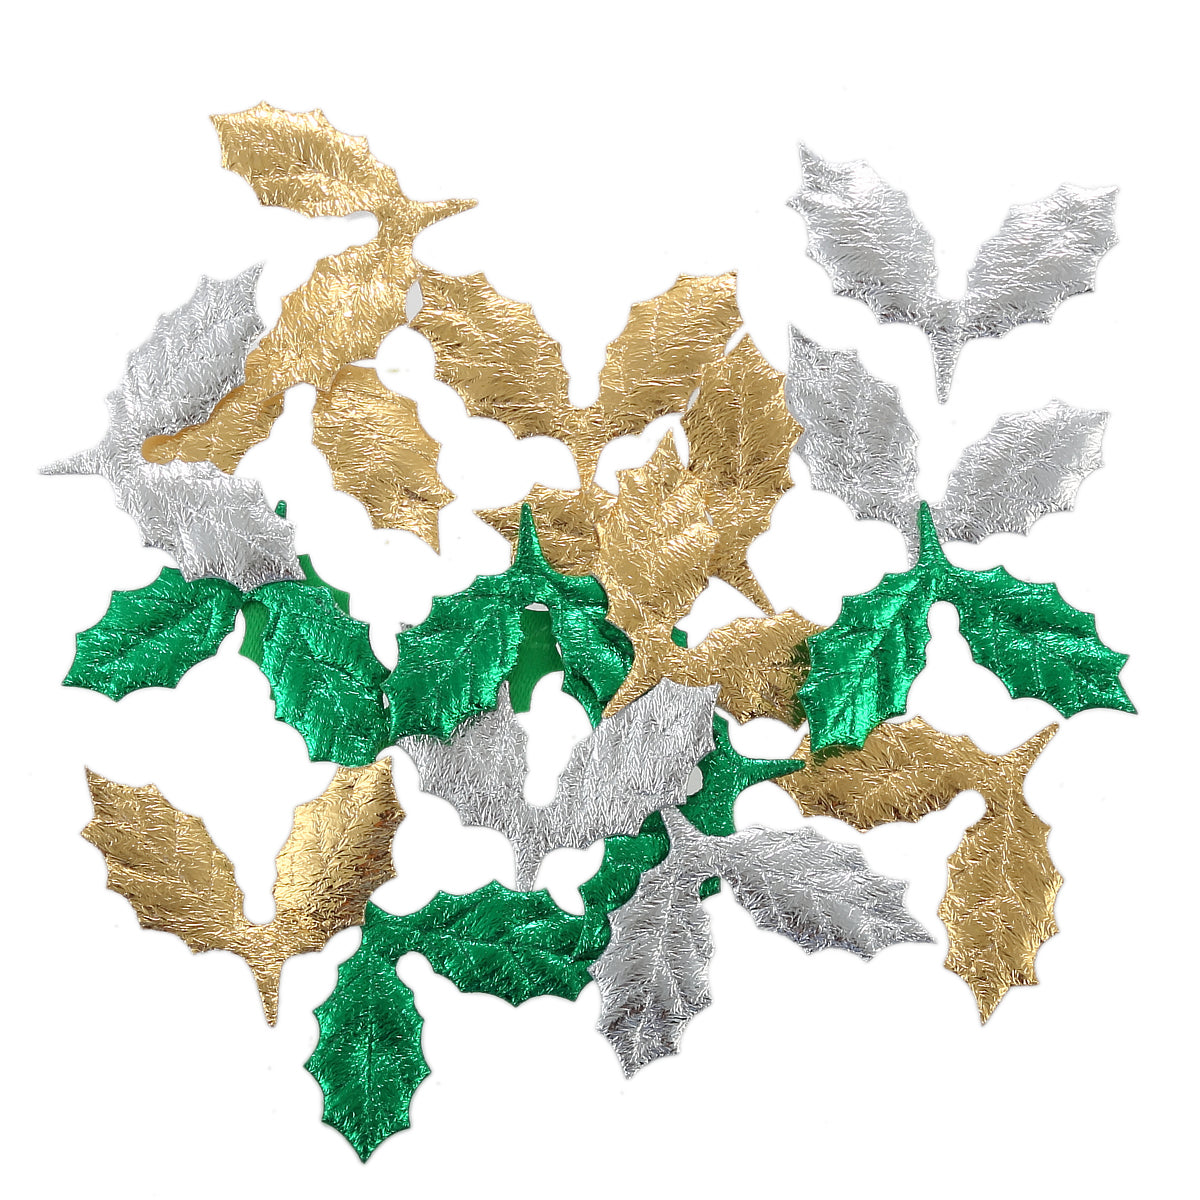 100 Metallic Fabric Holly Leaves Craft Embellishments, Gold, Silver, Green